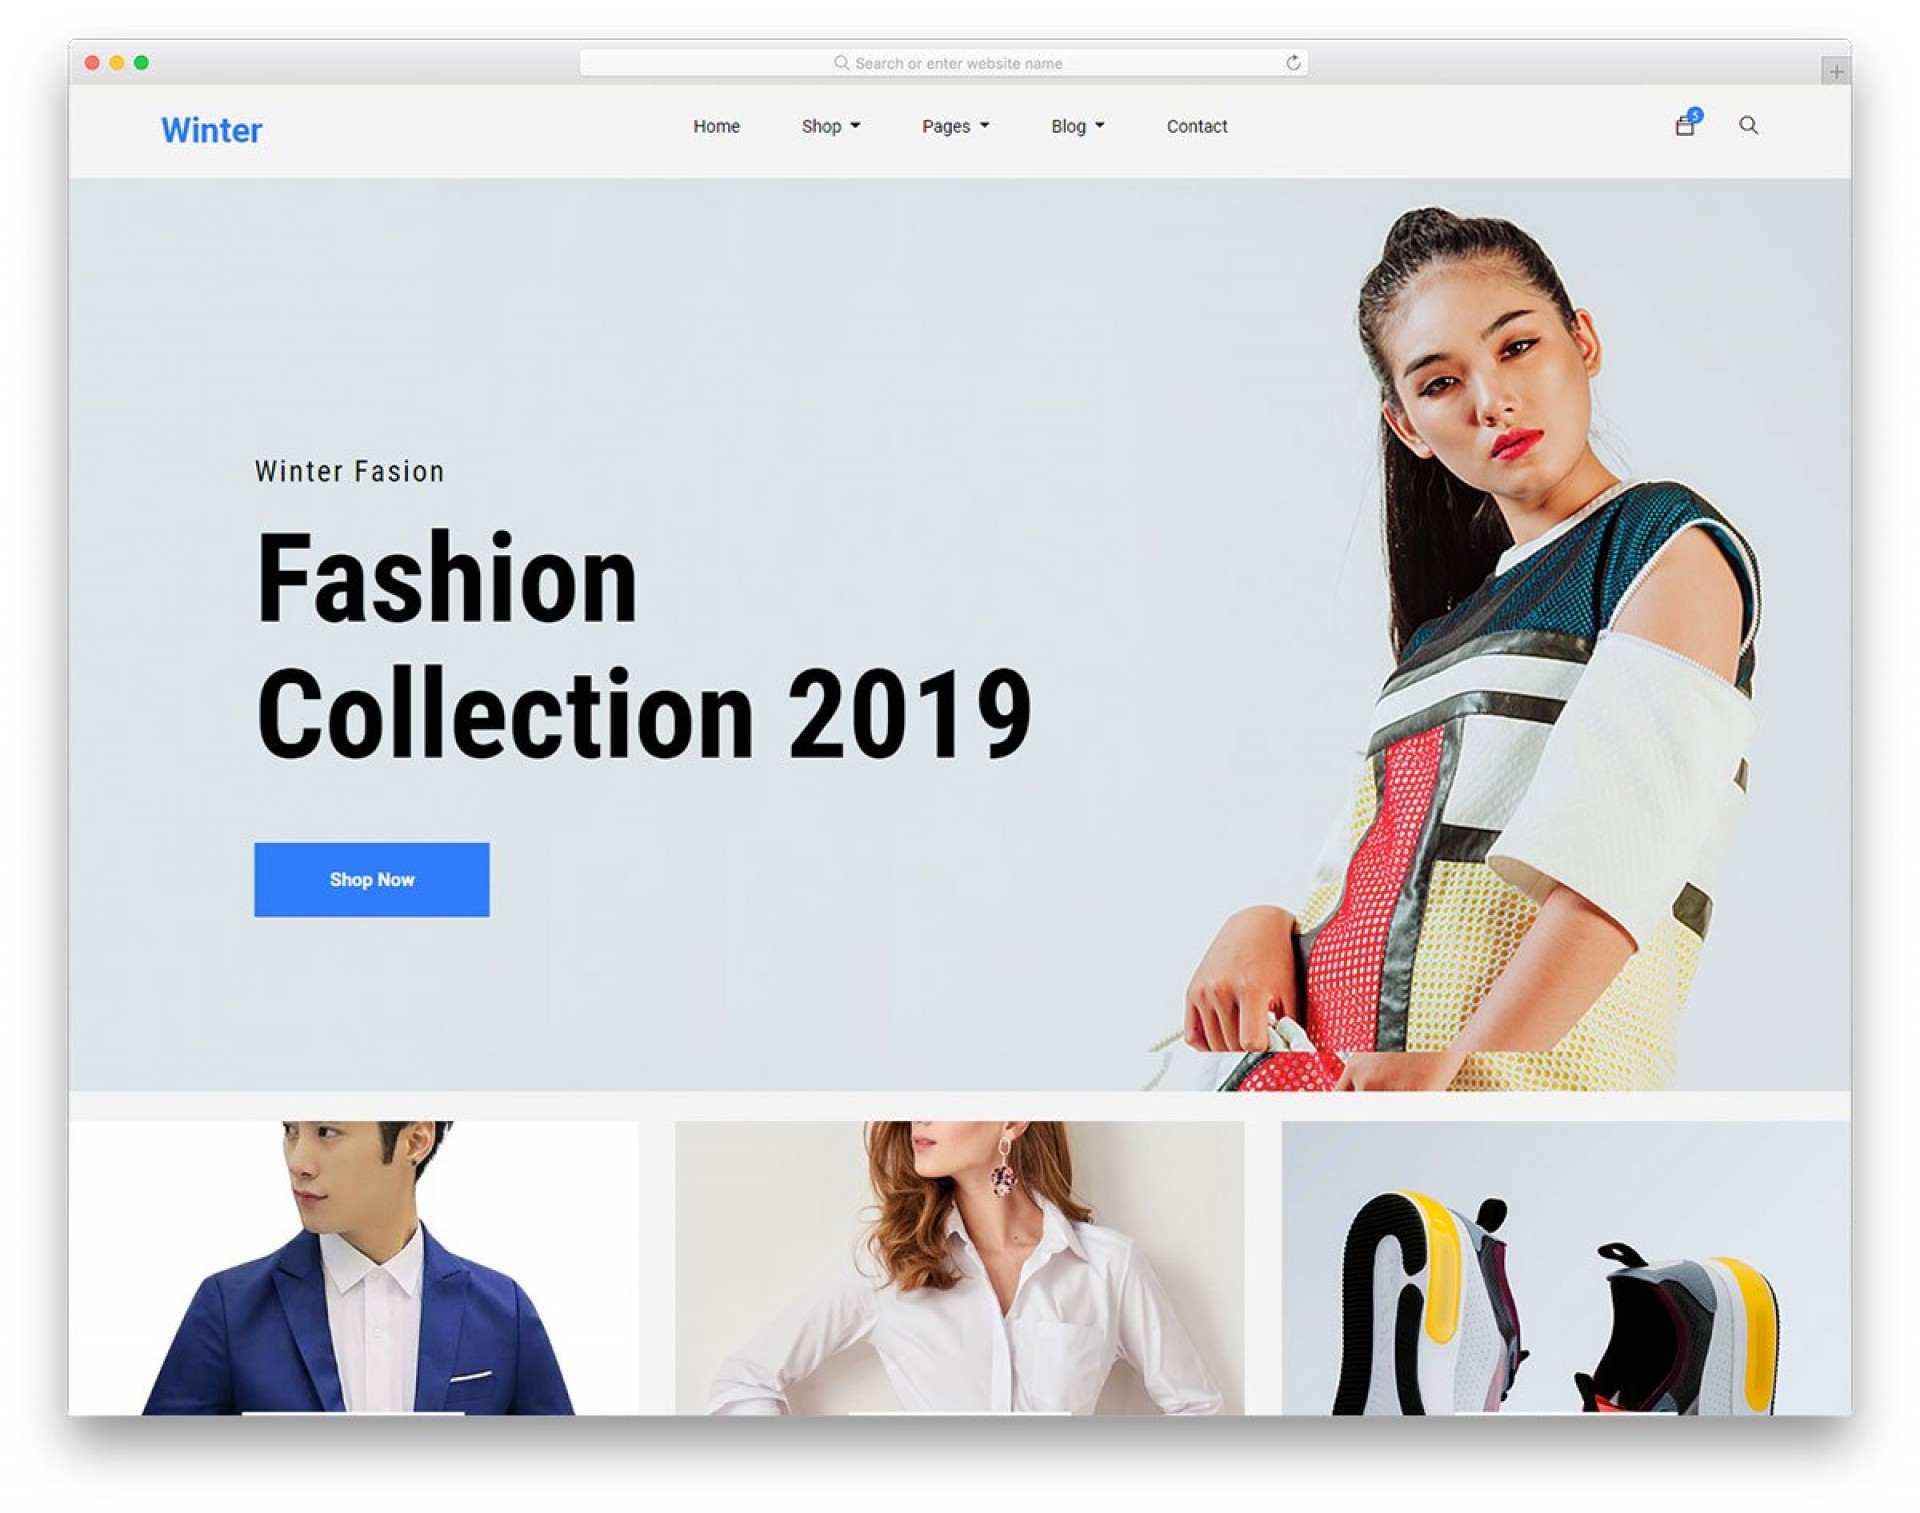 011 Archaicawful Free E Commerce Website Template High Def  Ecommerce Html Cs Bootstrap Php1920